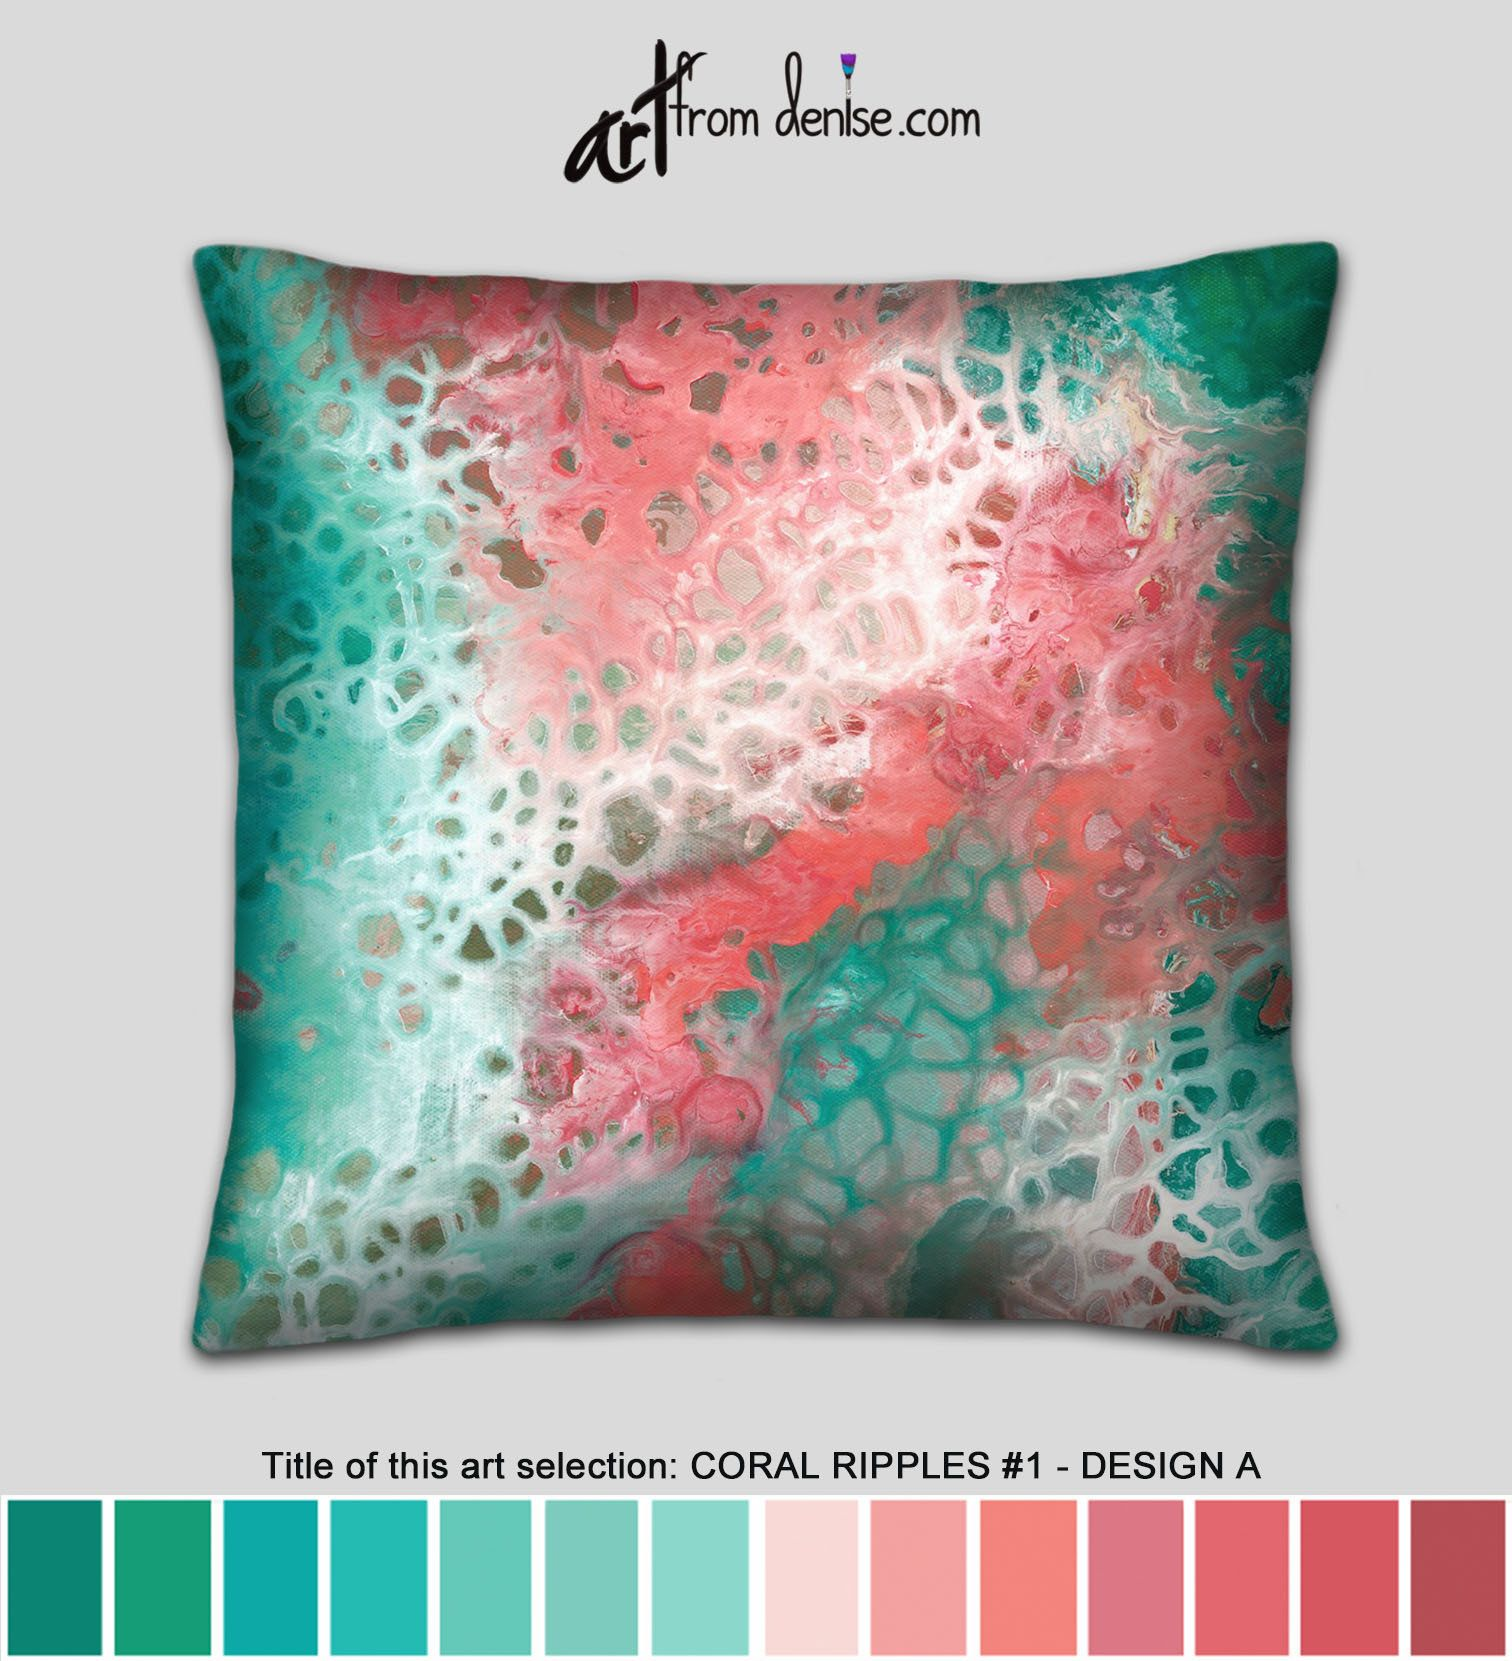 Green White Teal And Coral Throw Pillows Small Decorative Etsy Small Decorative Pillow Bed Pillows Decorative Coral Throw Pillows